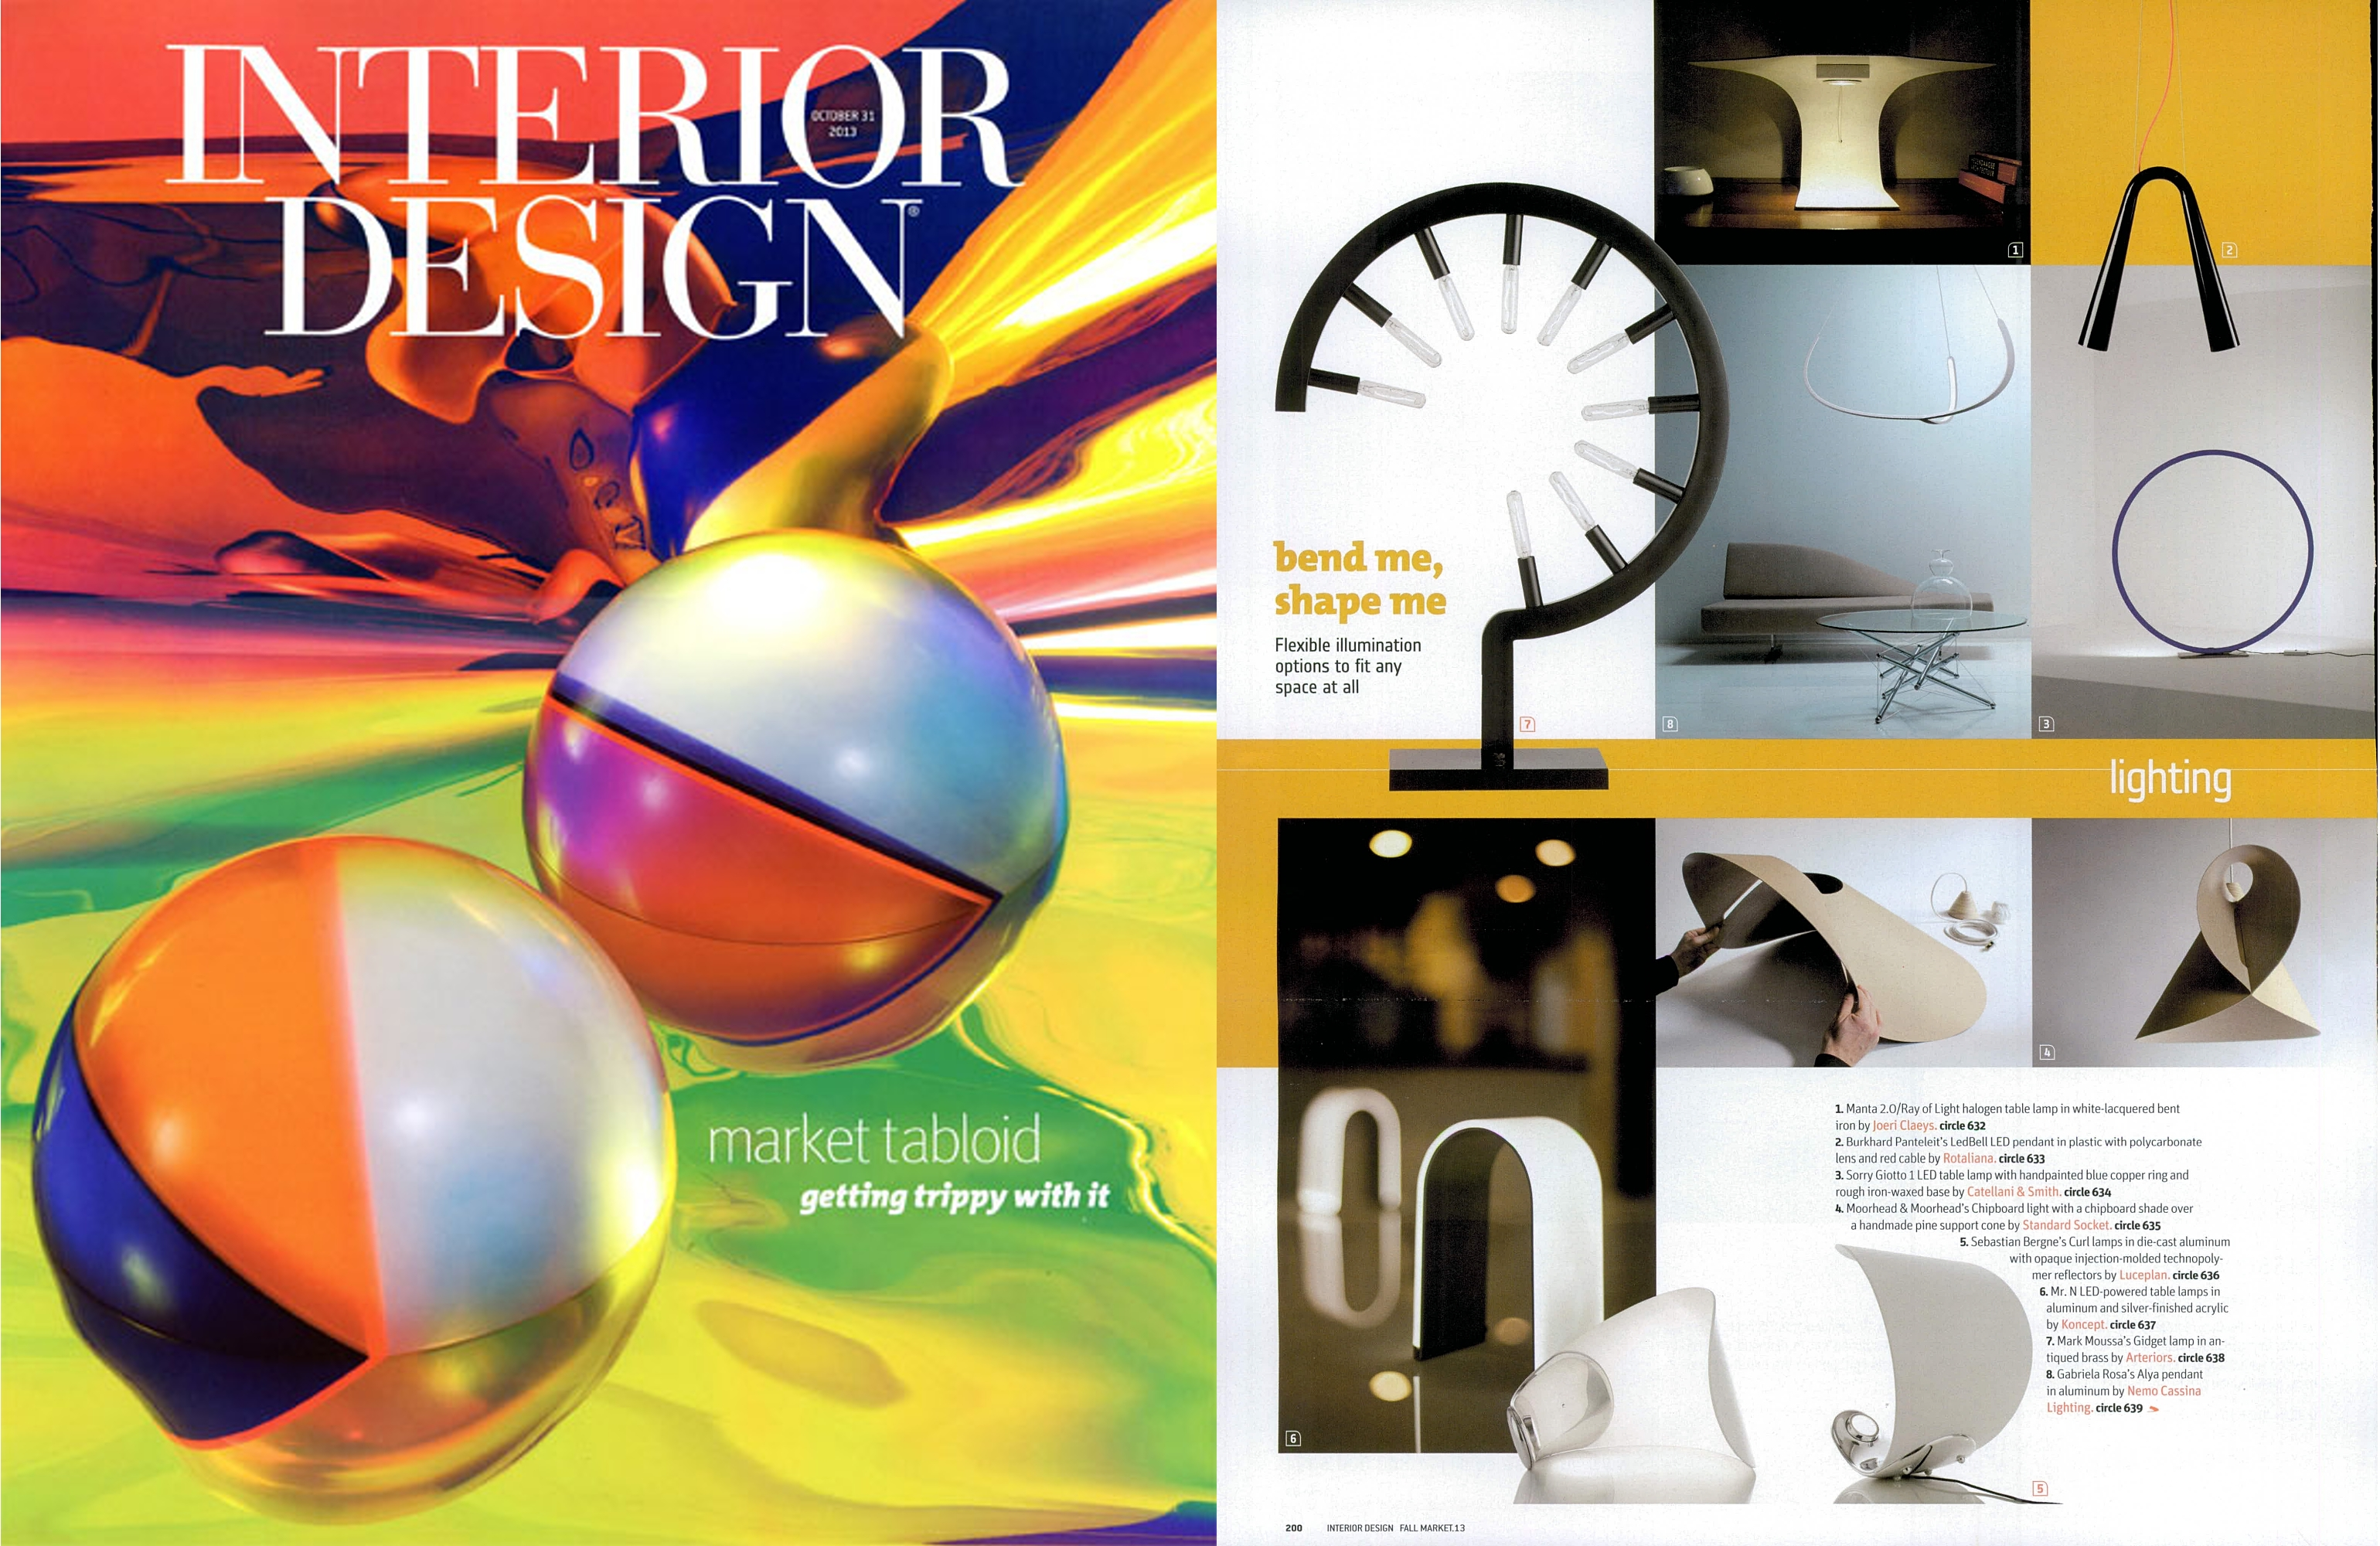 Abstract Art In Interior Design Magazine Joeri Claeys